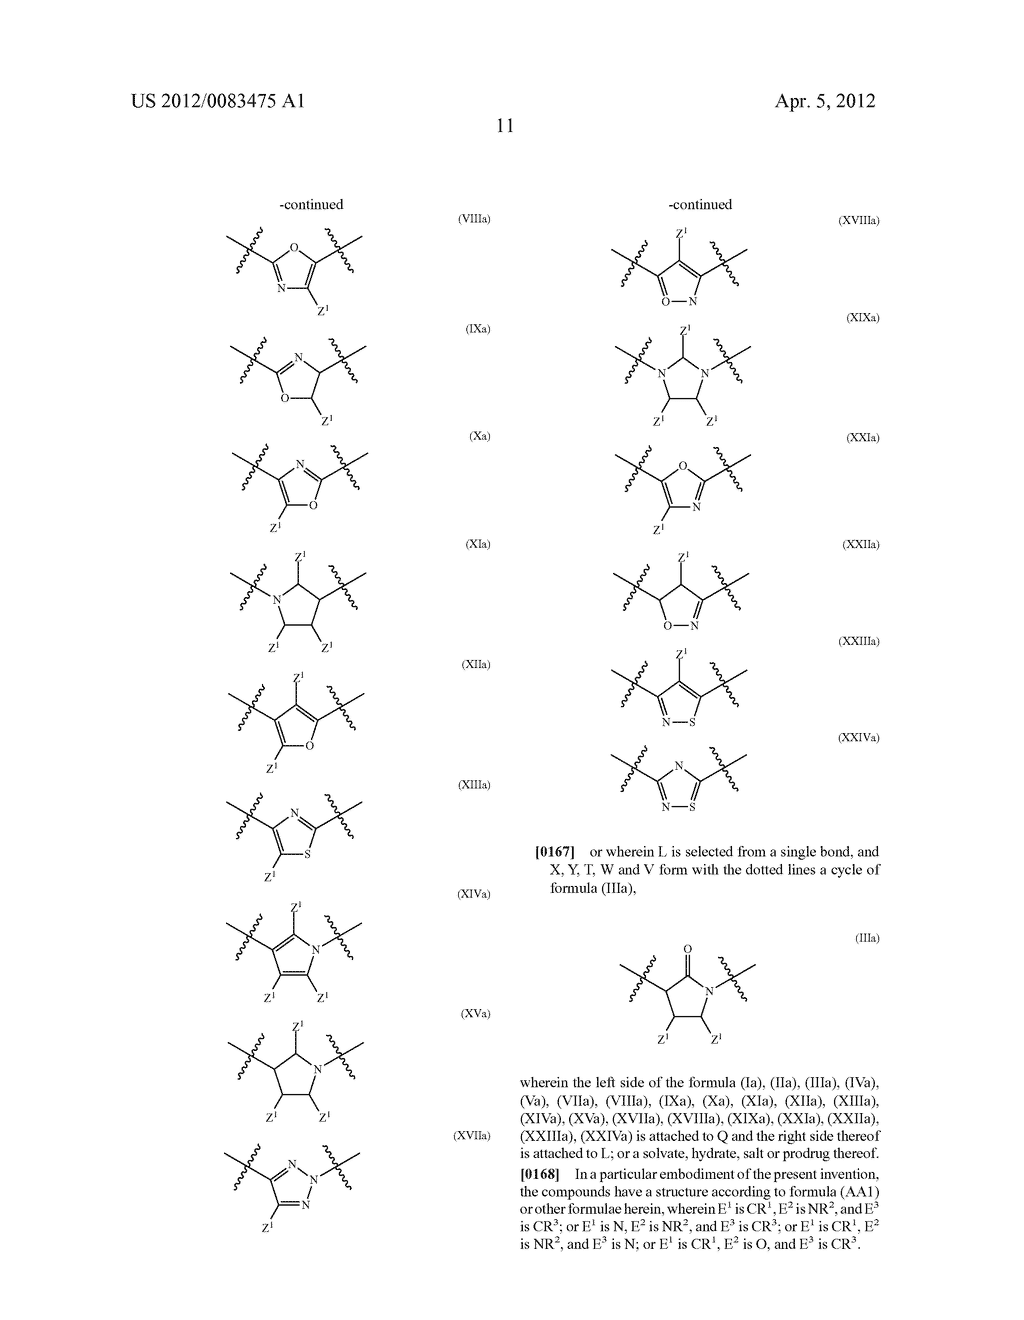 INDOLE AMIDE DERIVATIVES AND RELATED COMPOUNDS FOR USE IN THE TREATMENT OF     NEURODEGENERATIVE DISEASES - diagram, schematic, and image 14